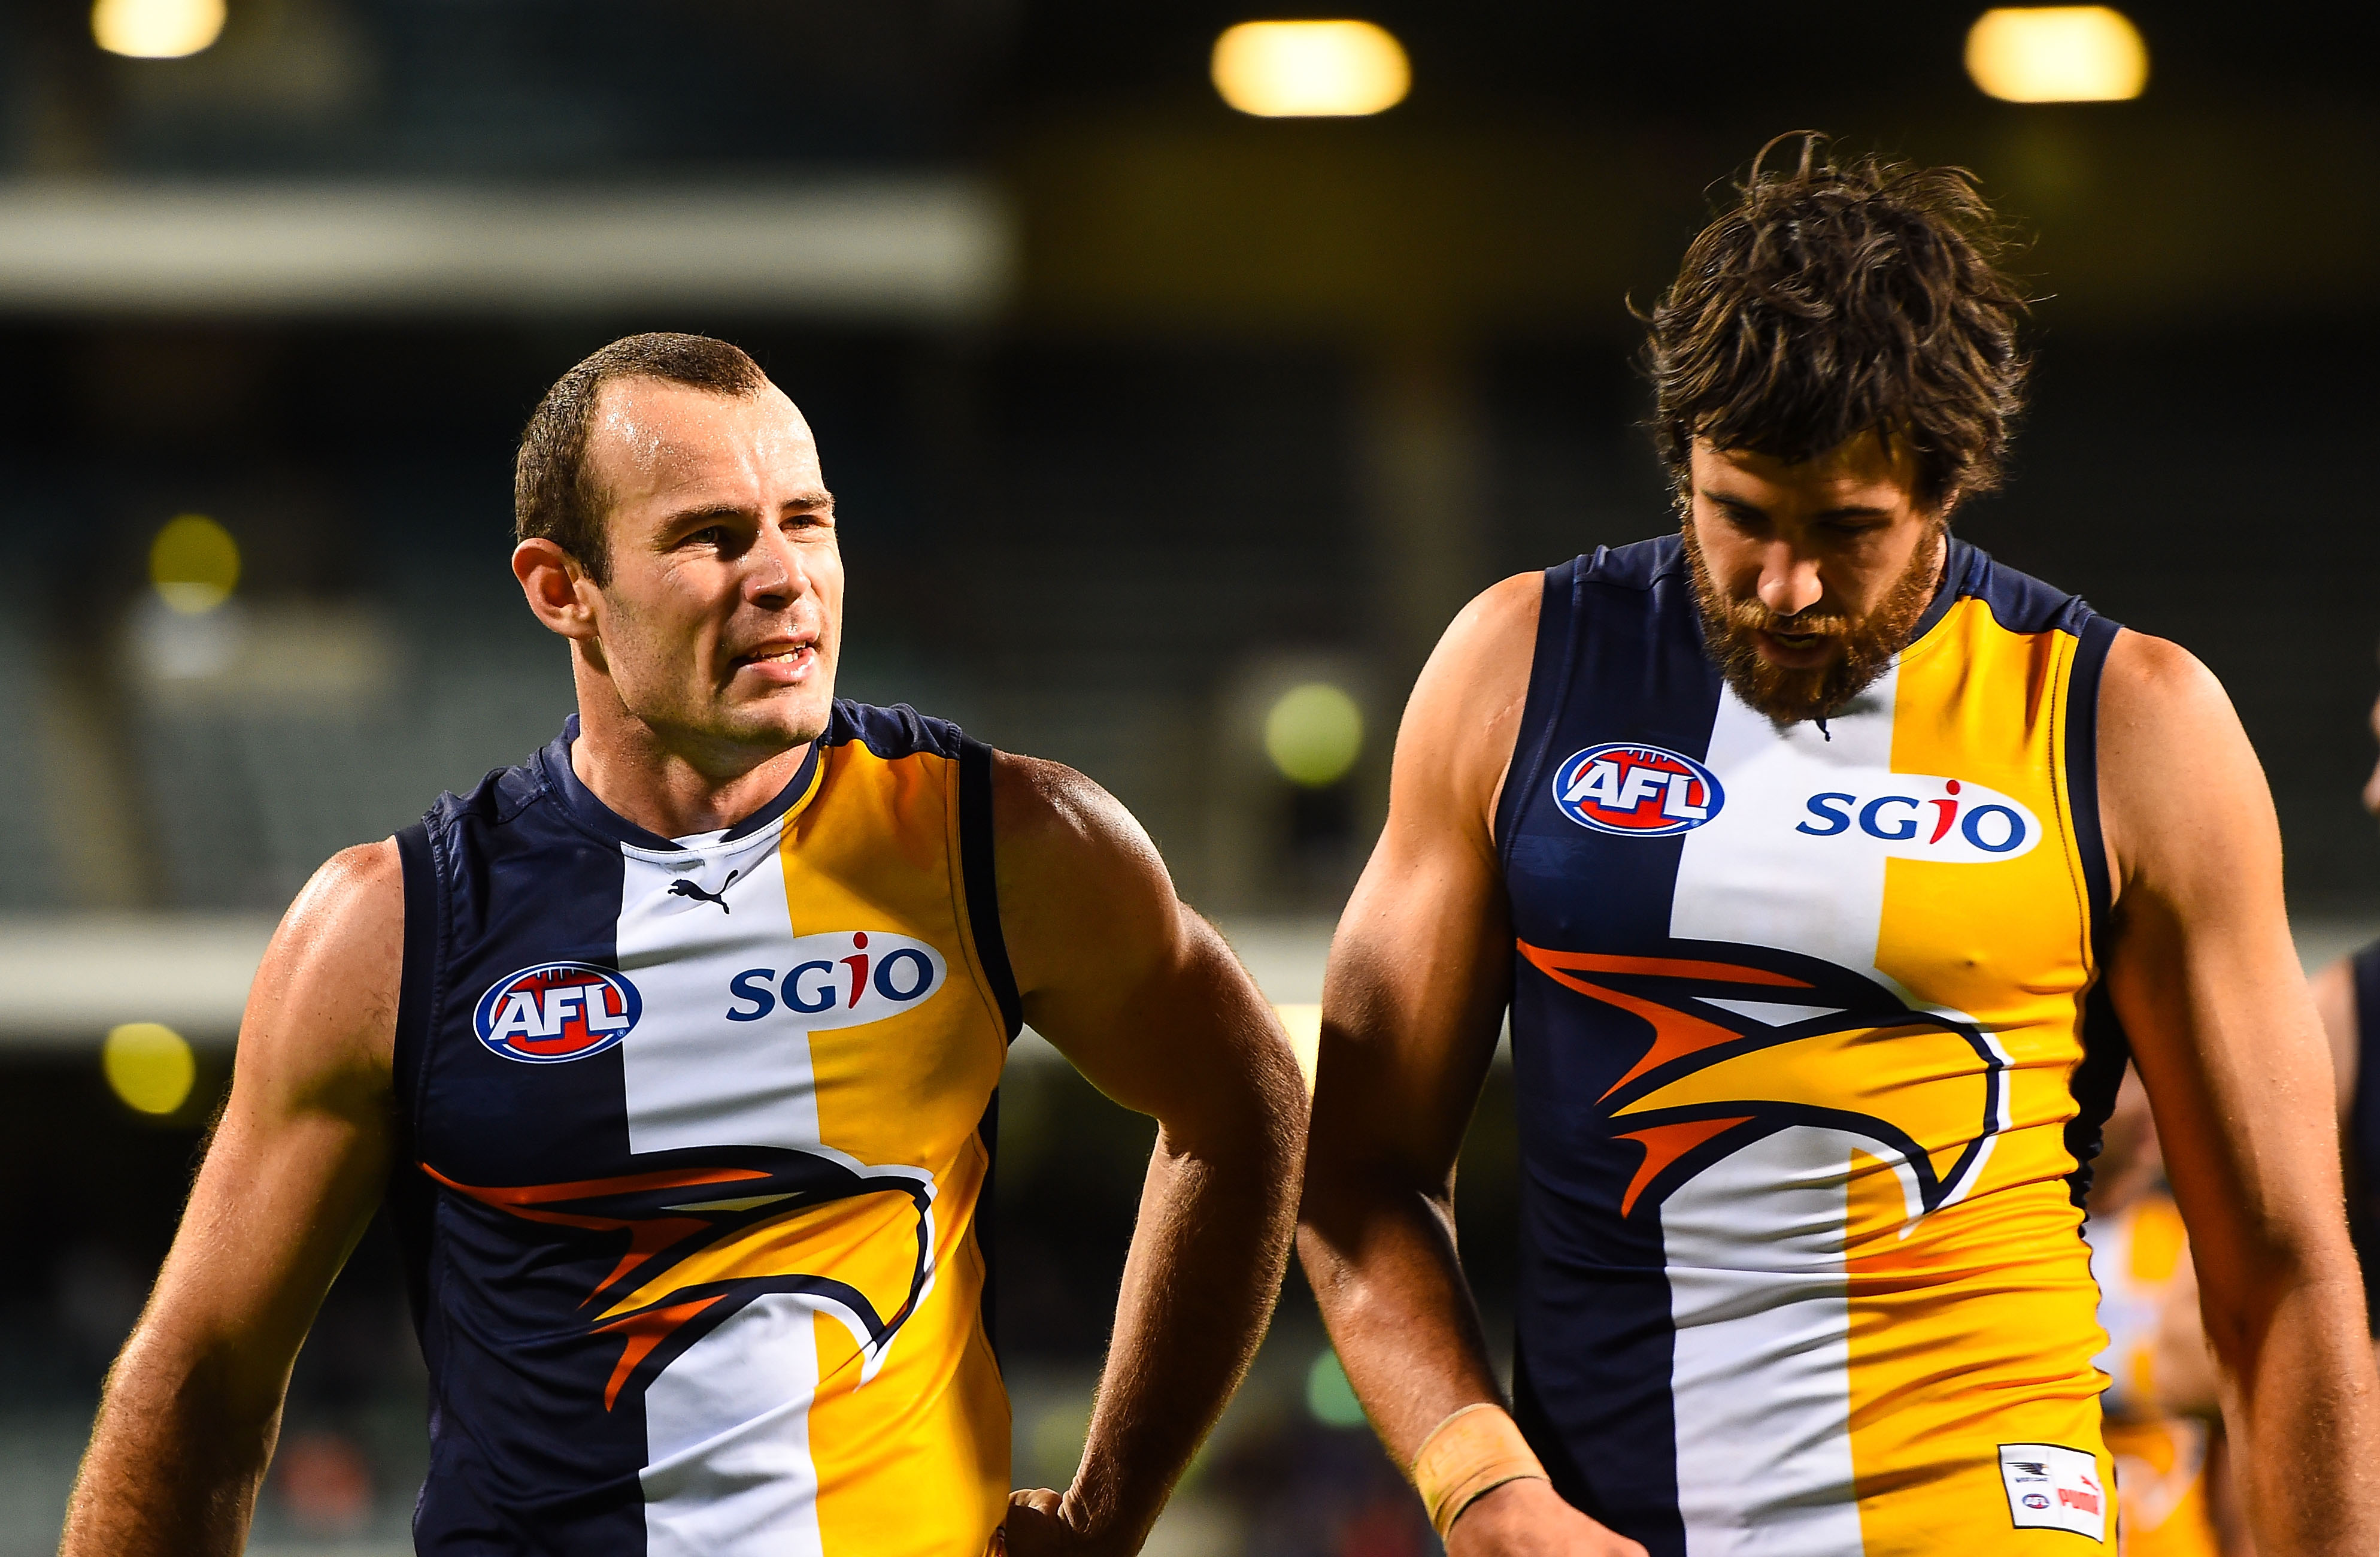 AFL 2015 NAB Challenge - West Coast v Fremantle